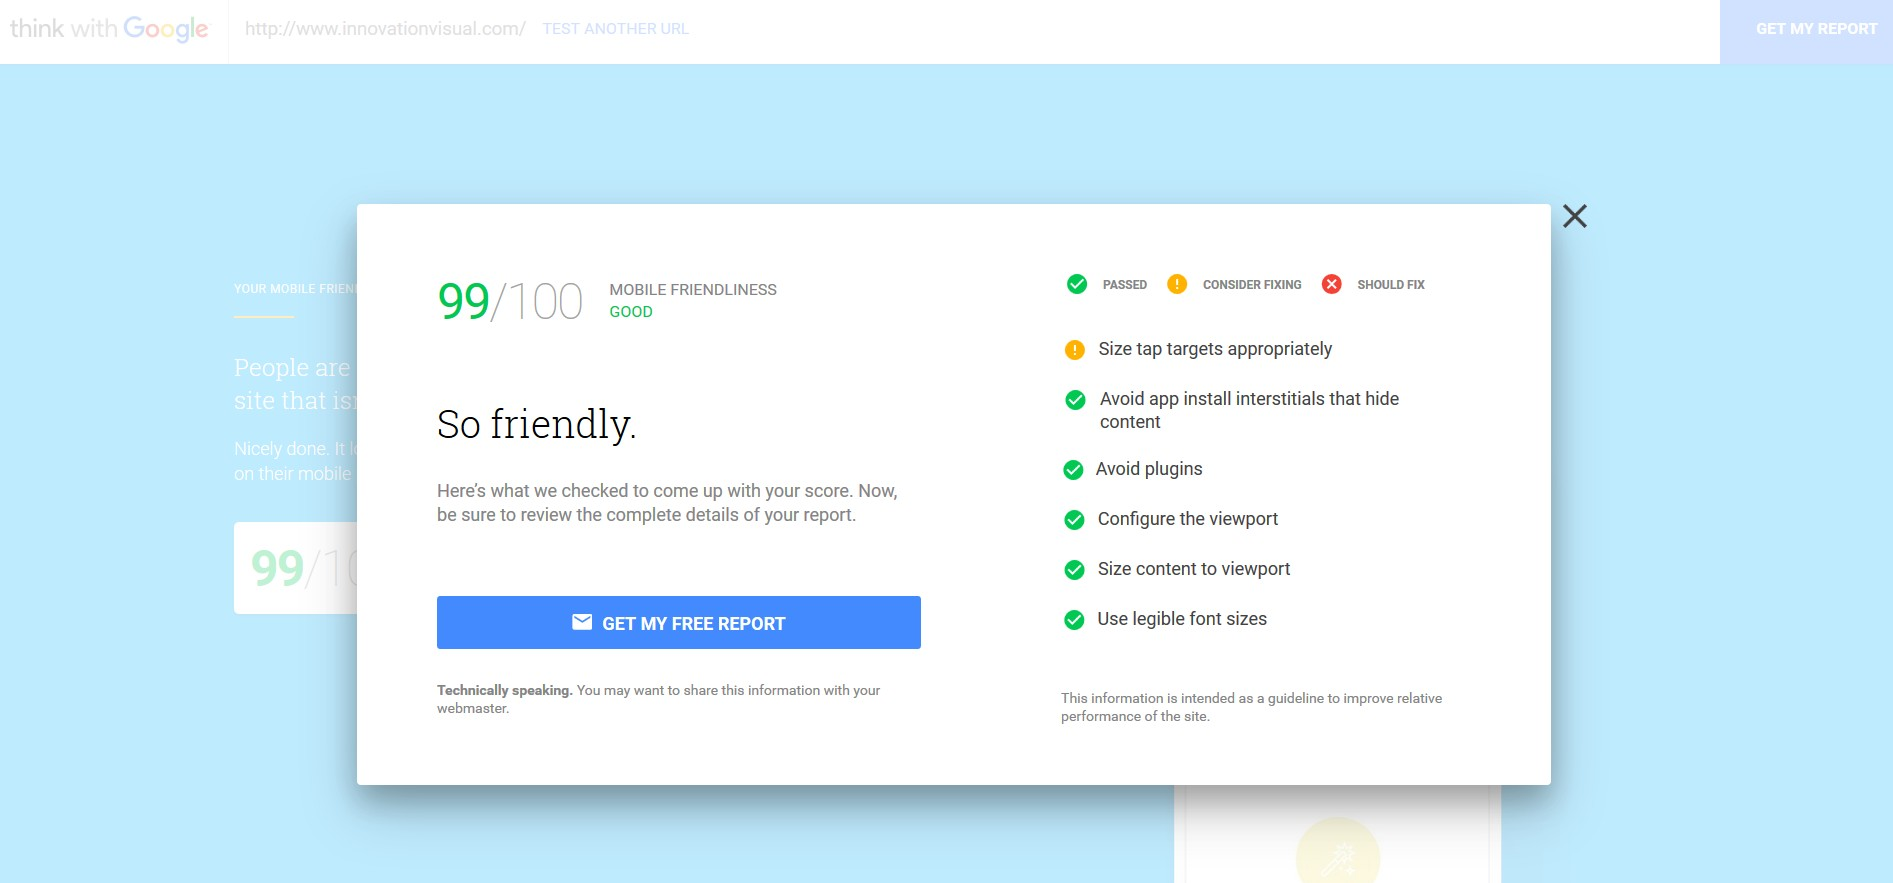 innovation visual website - mobile friendliness report from think with google test tool